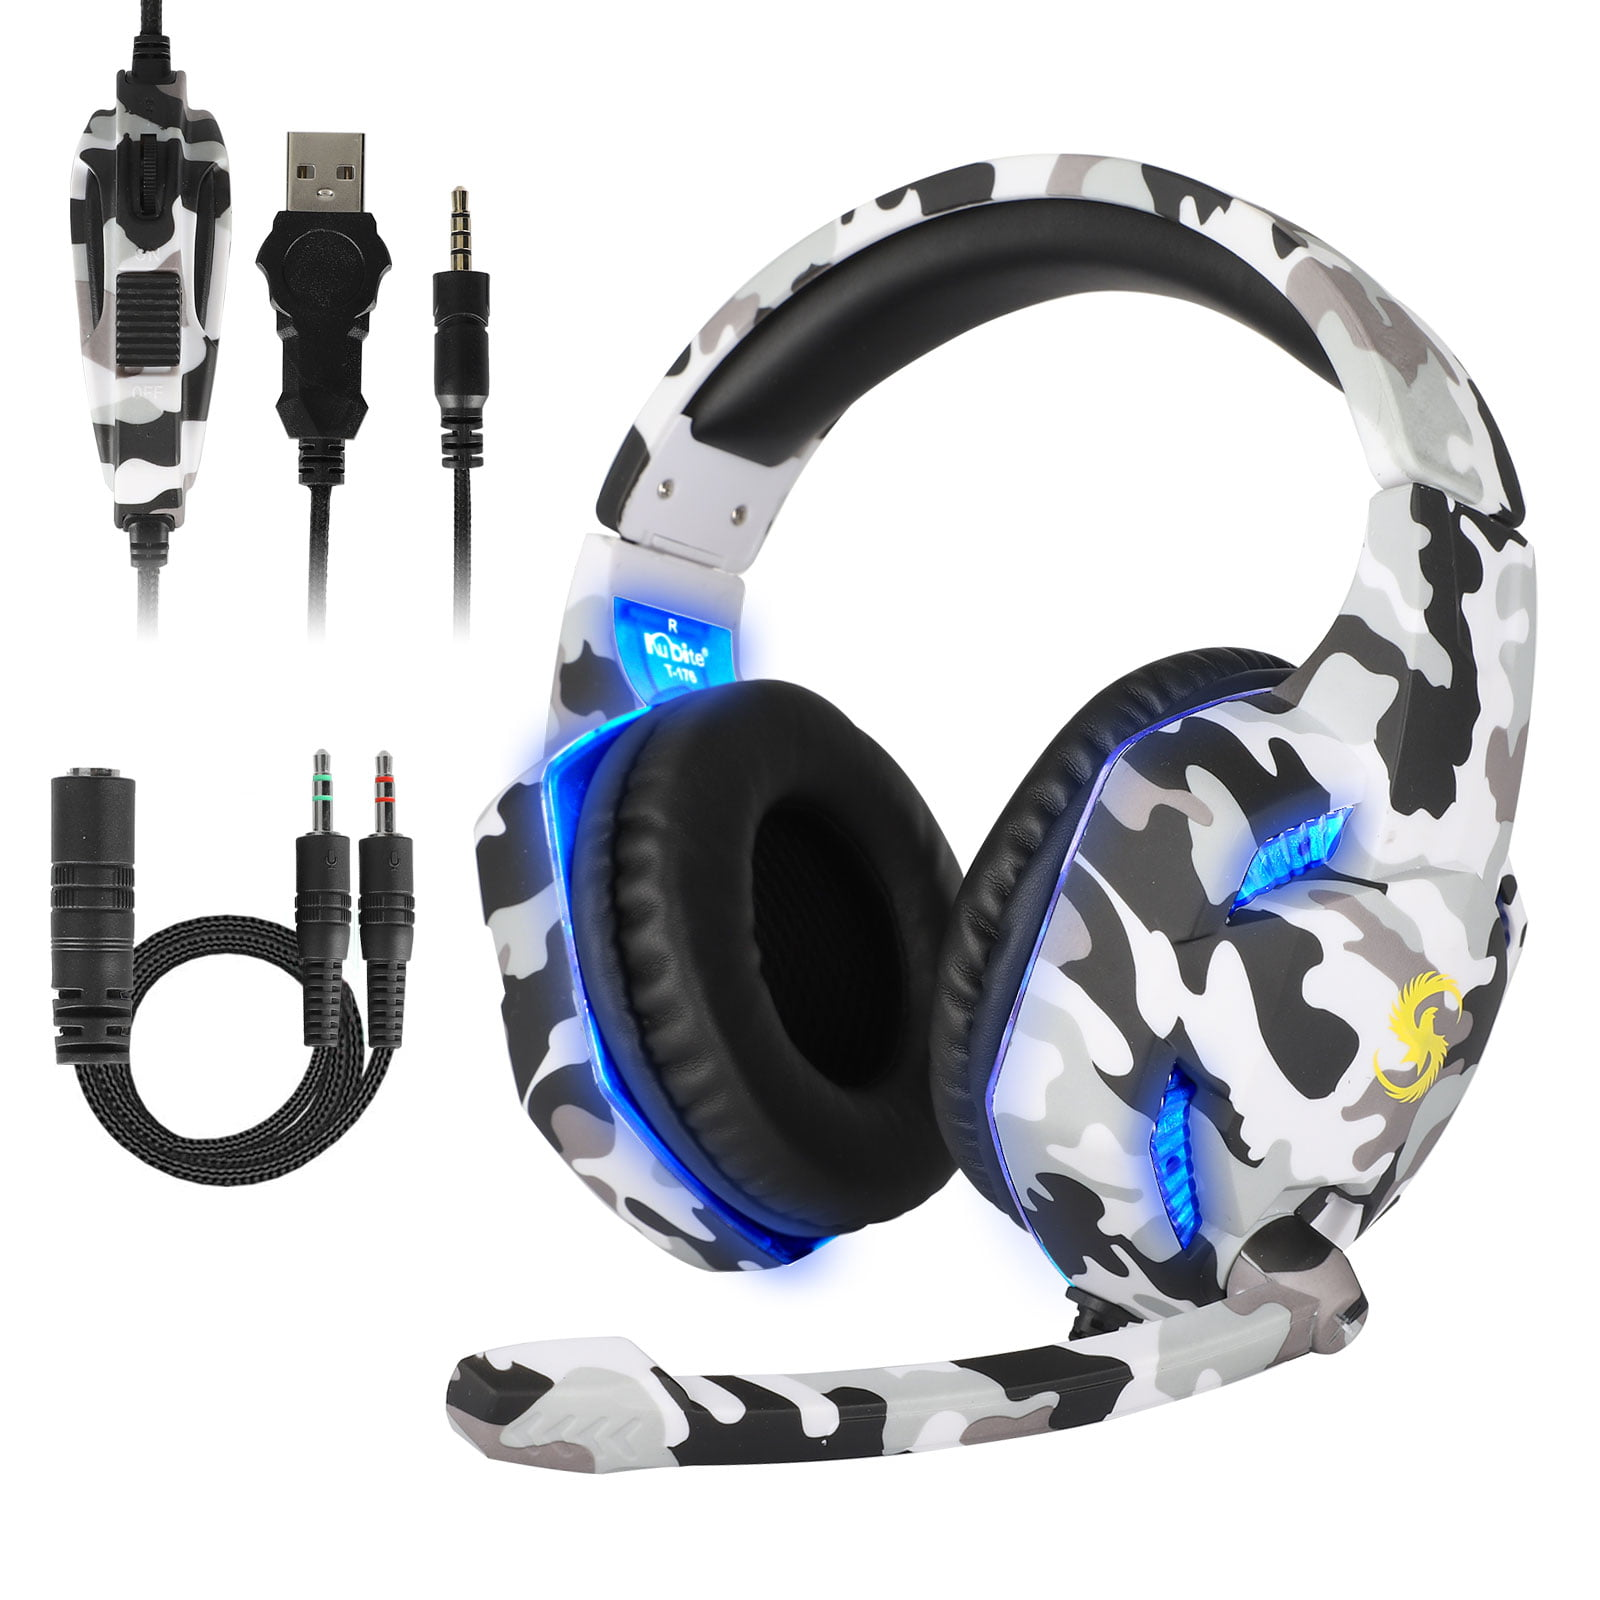 TSV PC Gaming Headset for PS4, Xbox One, Mac, Laptop, Nintendo Switch, Over-Ear Gaming Headphones with Stereo Surround Sound with Noise Canceling Mic, LED Light, Soft Memory Earmuffs, Volume Control